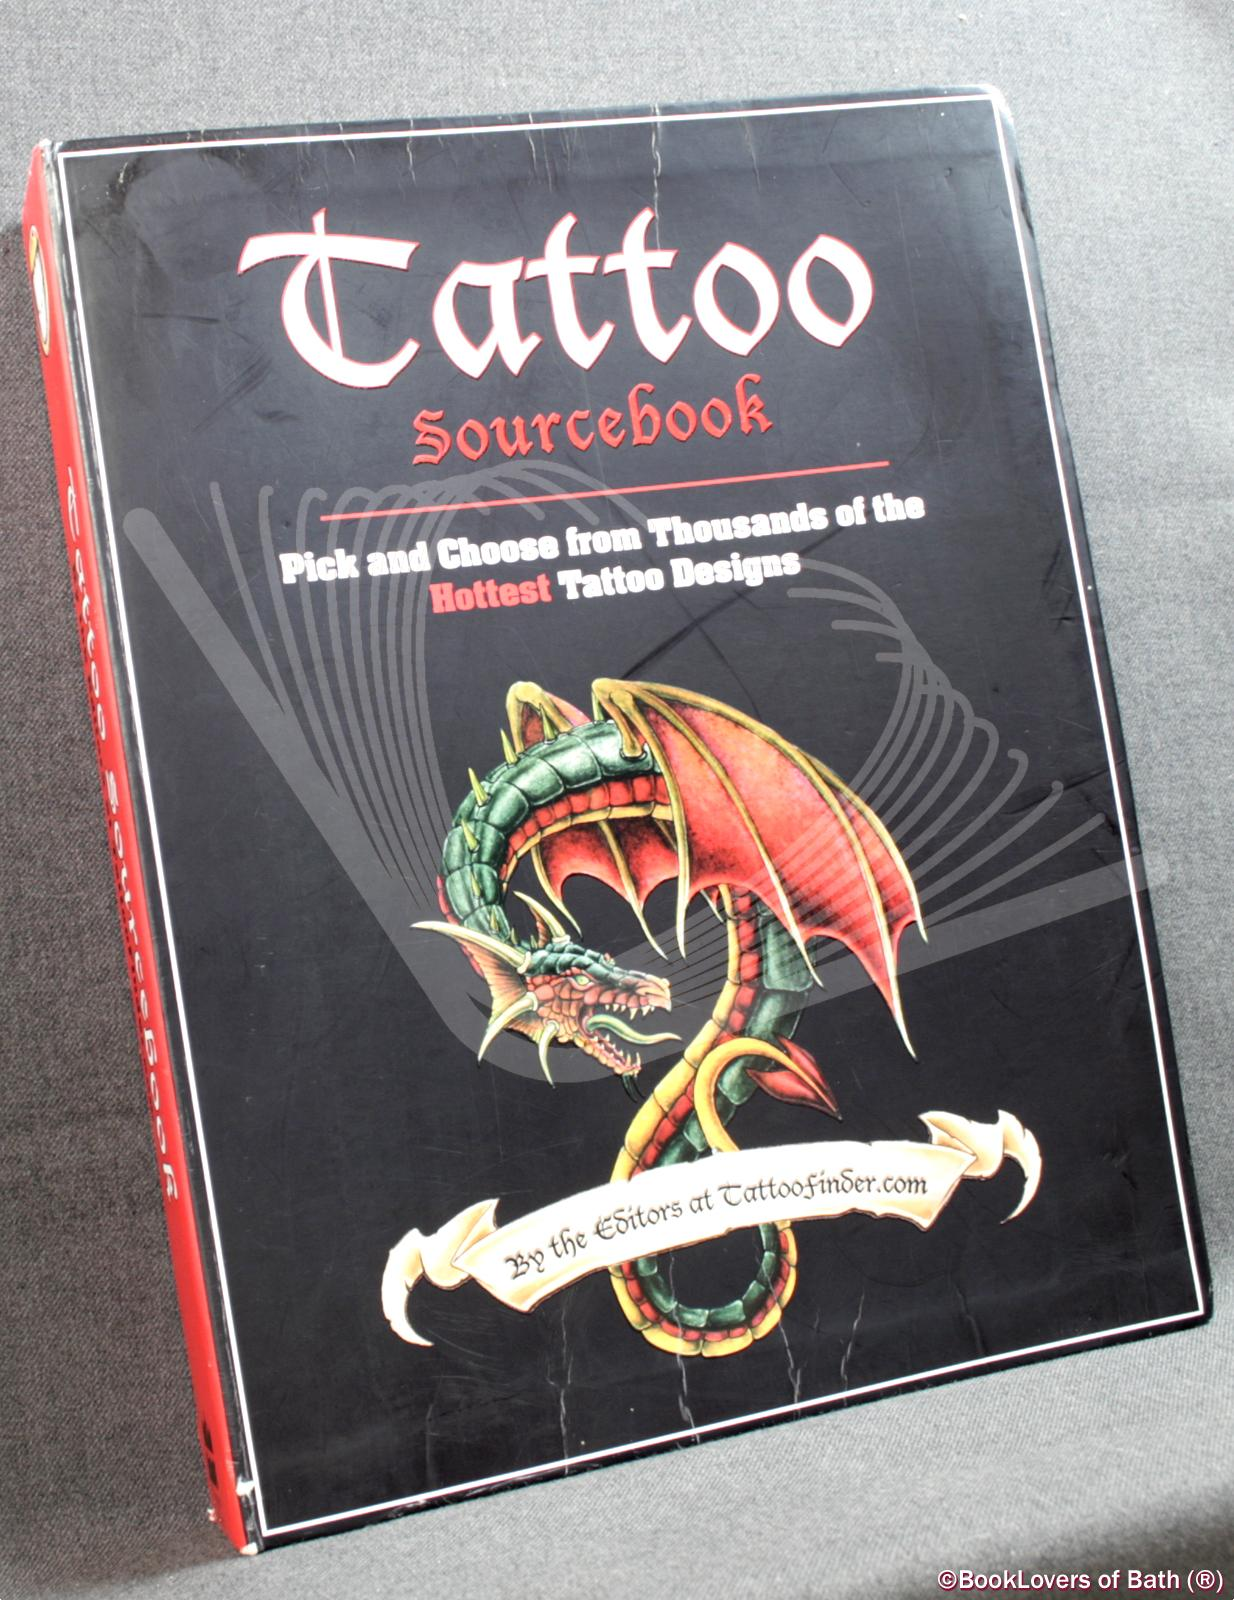 Tattoo Sourcebook: Pick and Choose from Thousands of the Hottest Tattoo Designs - Anon.